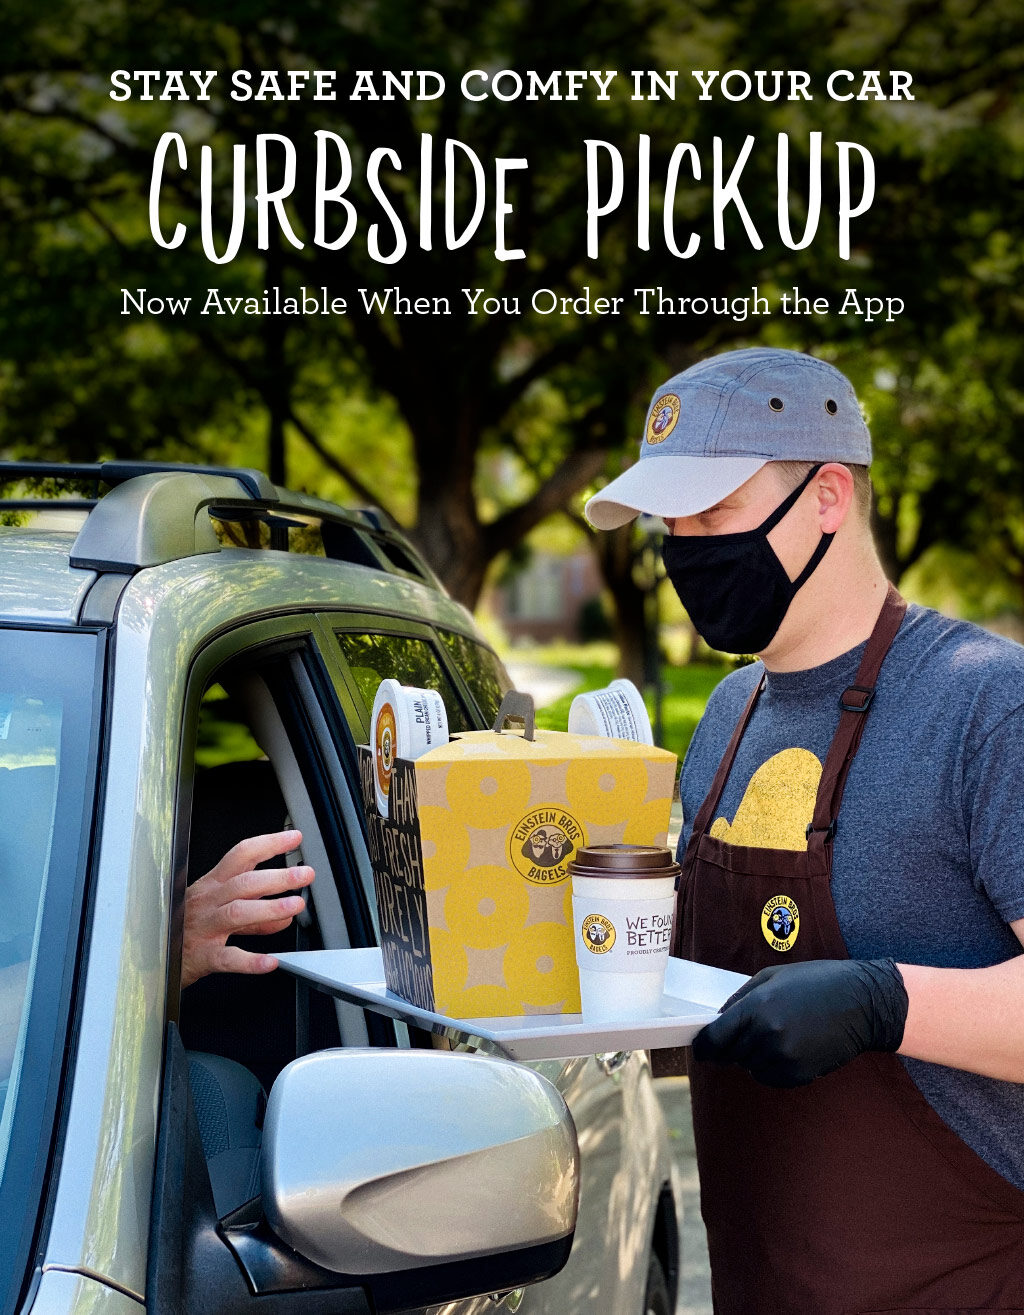 ROTATING SLIDER: Curbside Pickup available when you order through the app.